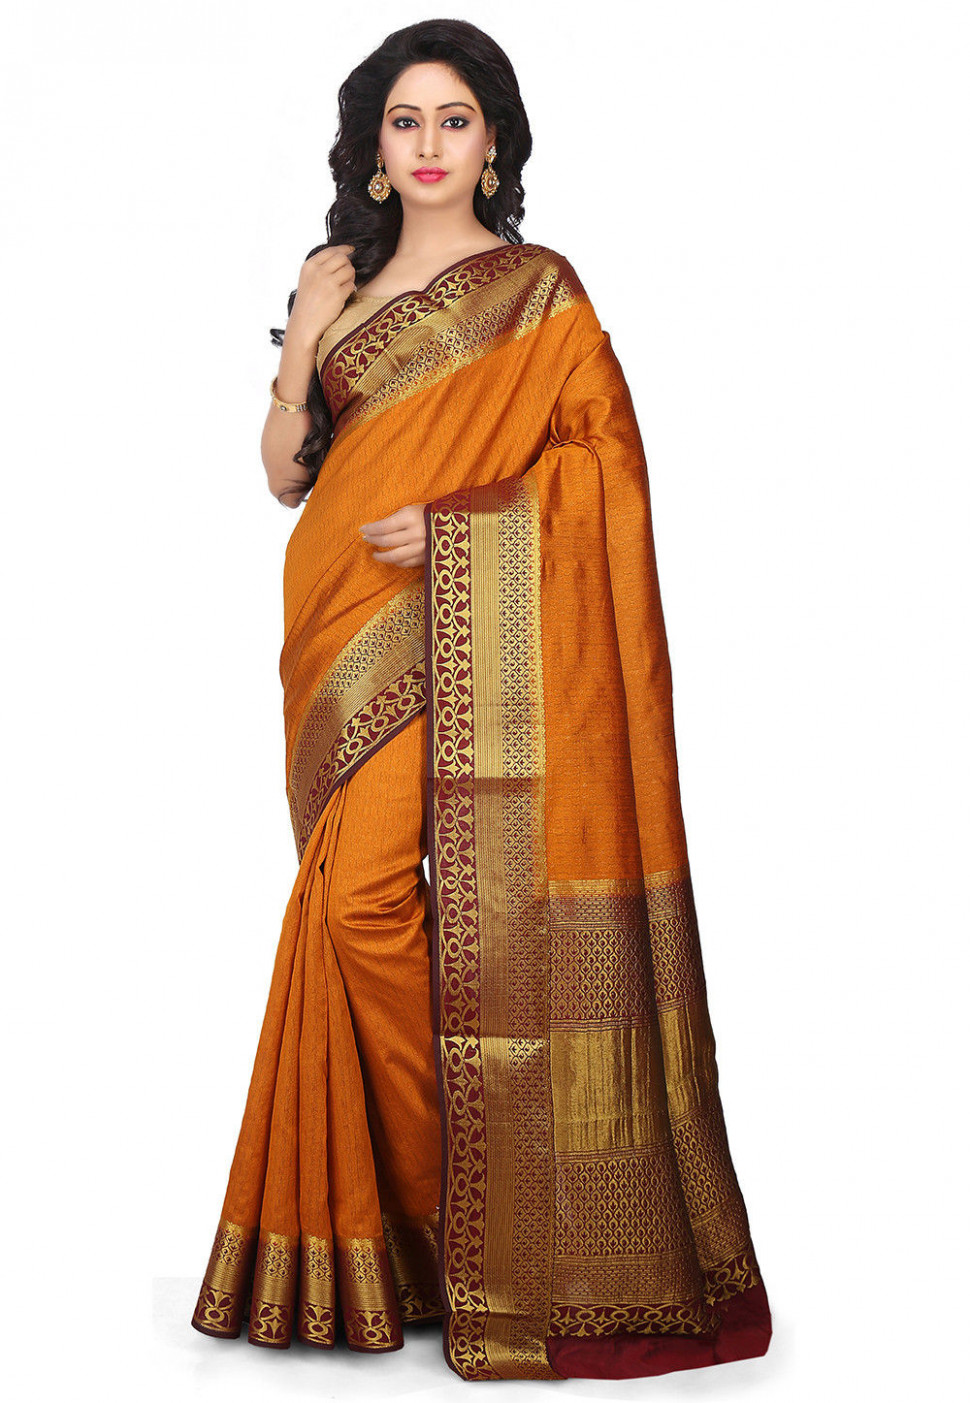 Woven Bangalore Silk Saree in Mustard : SQPA185 - bangalore silk saree